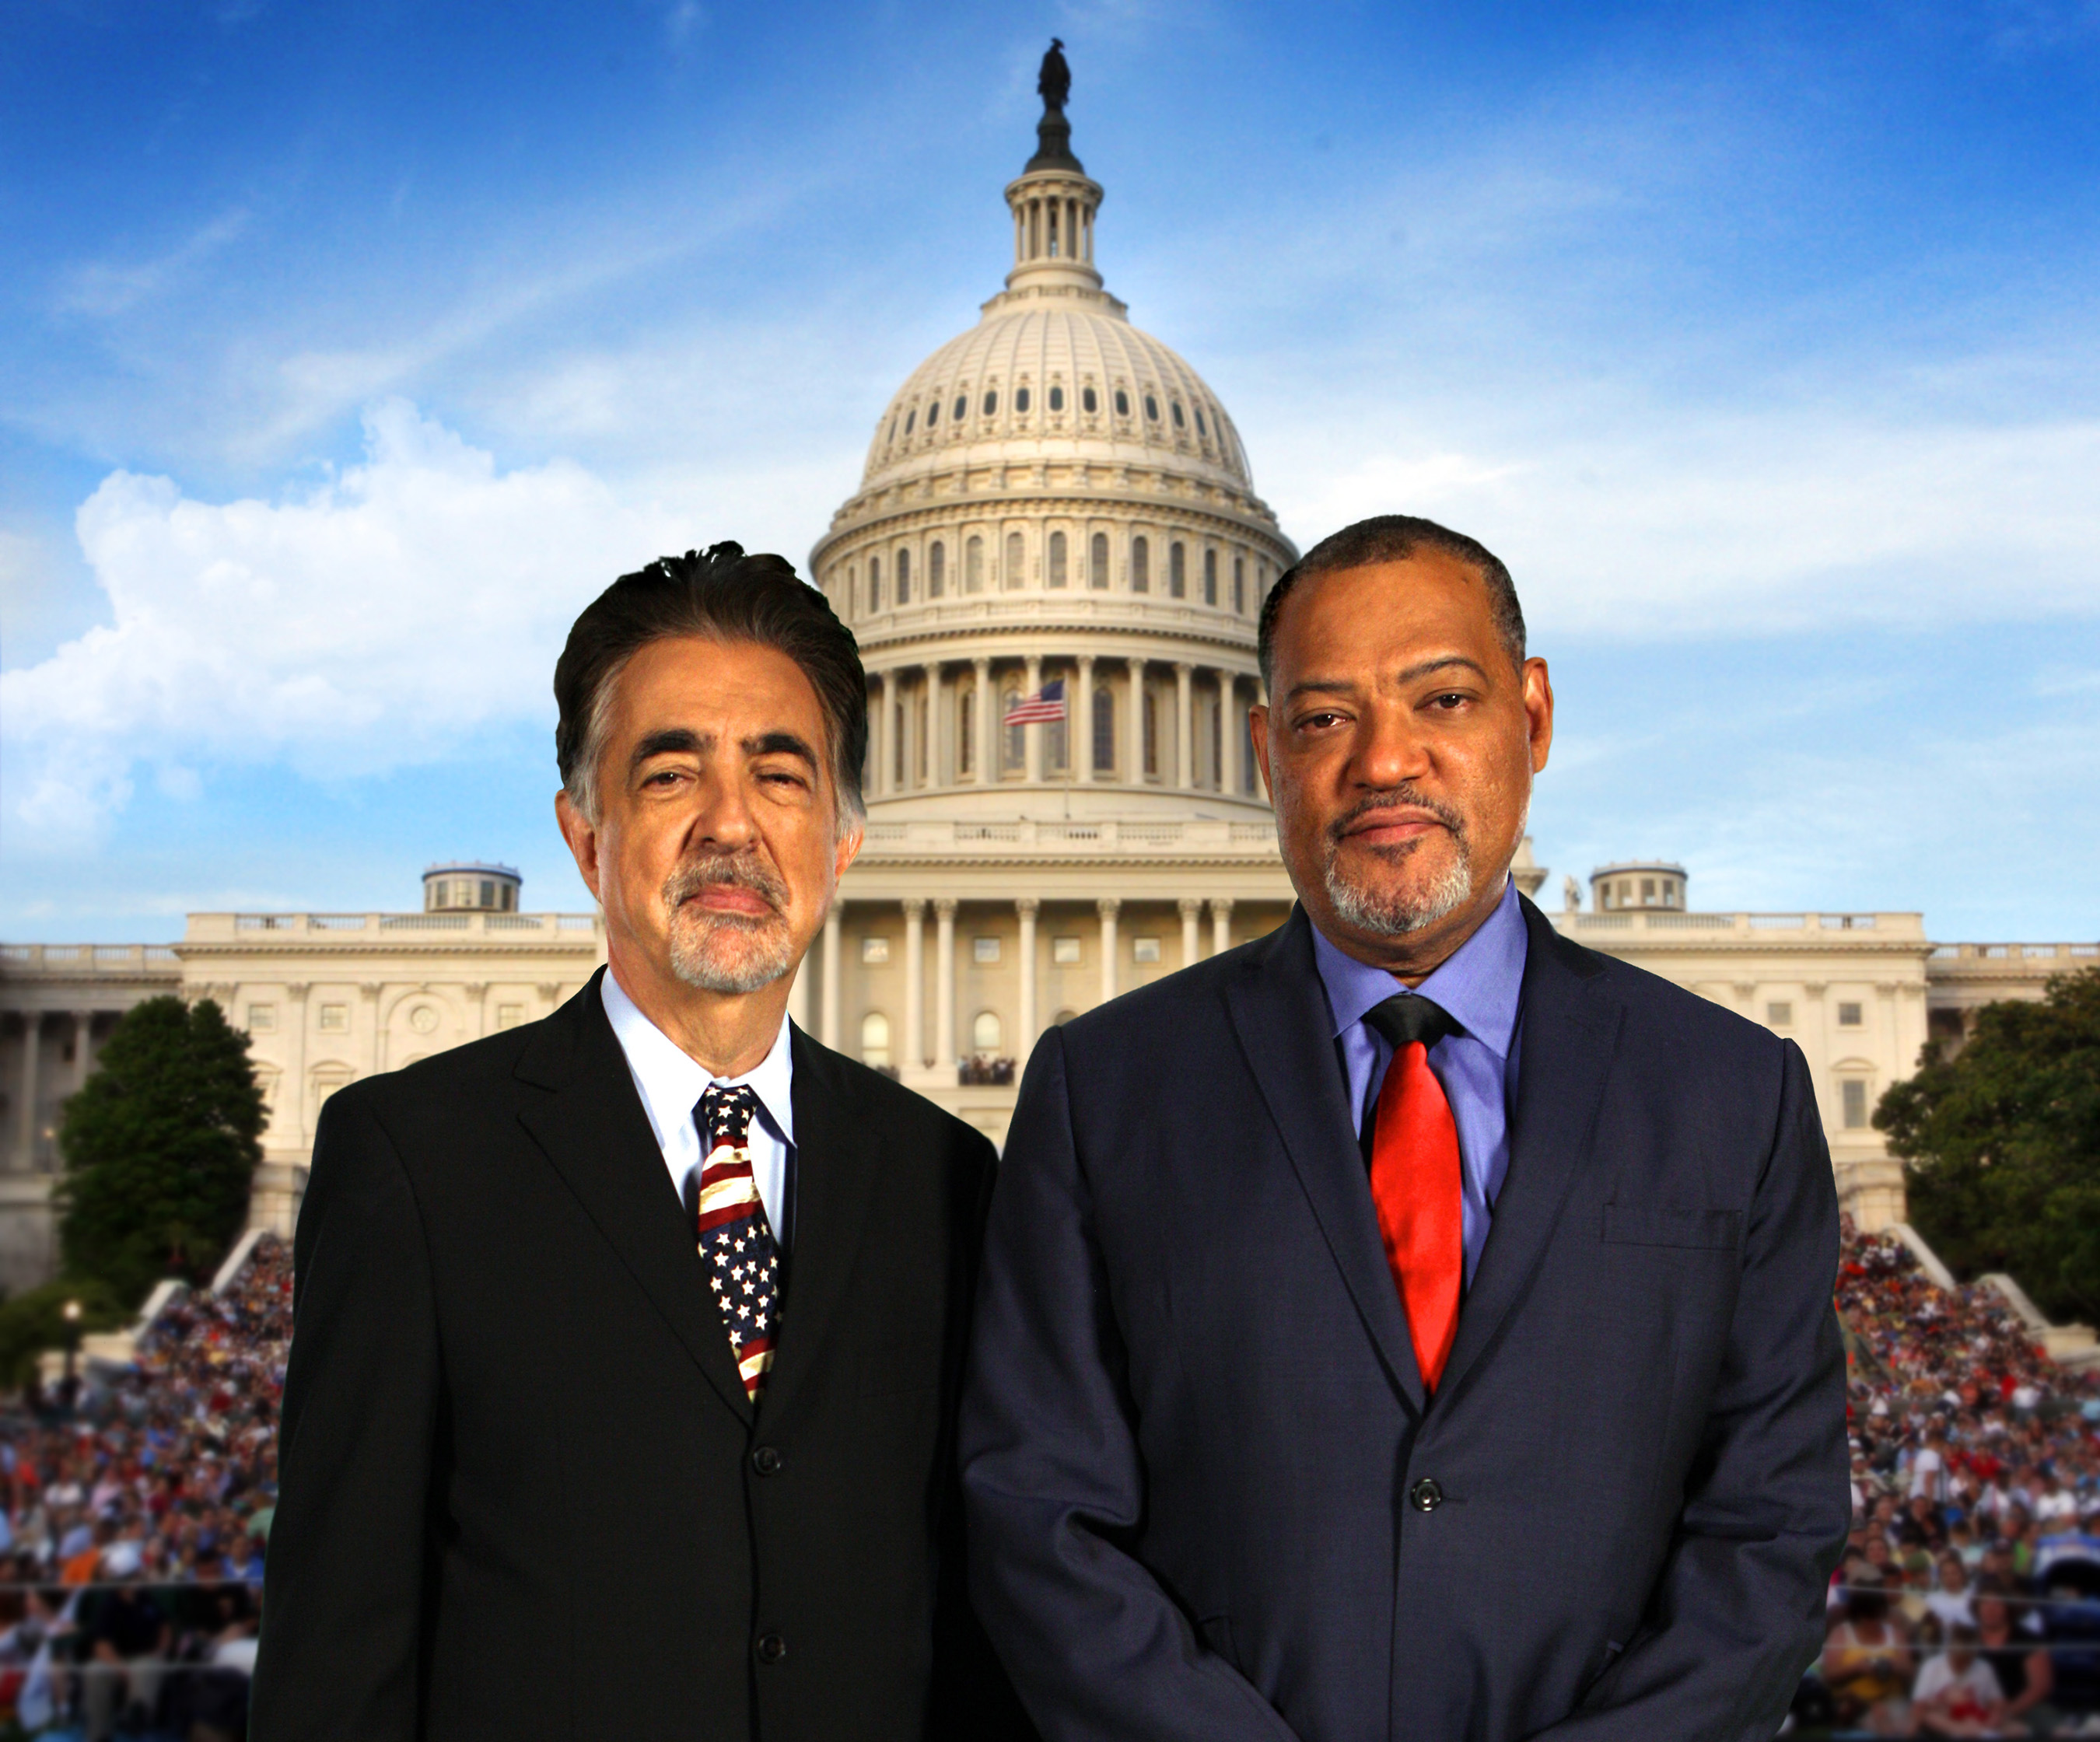 Laurence Fishburne and Joe Mantegna Co-Host PBS' NATIONAL MEMORIAL DAY CONCERT: An American Tradition Honoring Our Heroes Past and Present